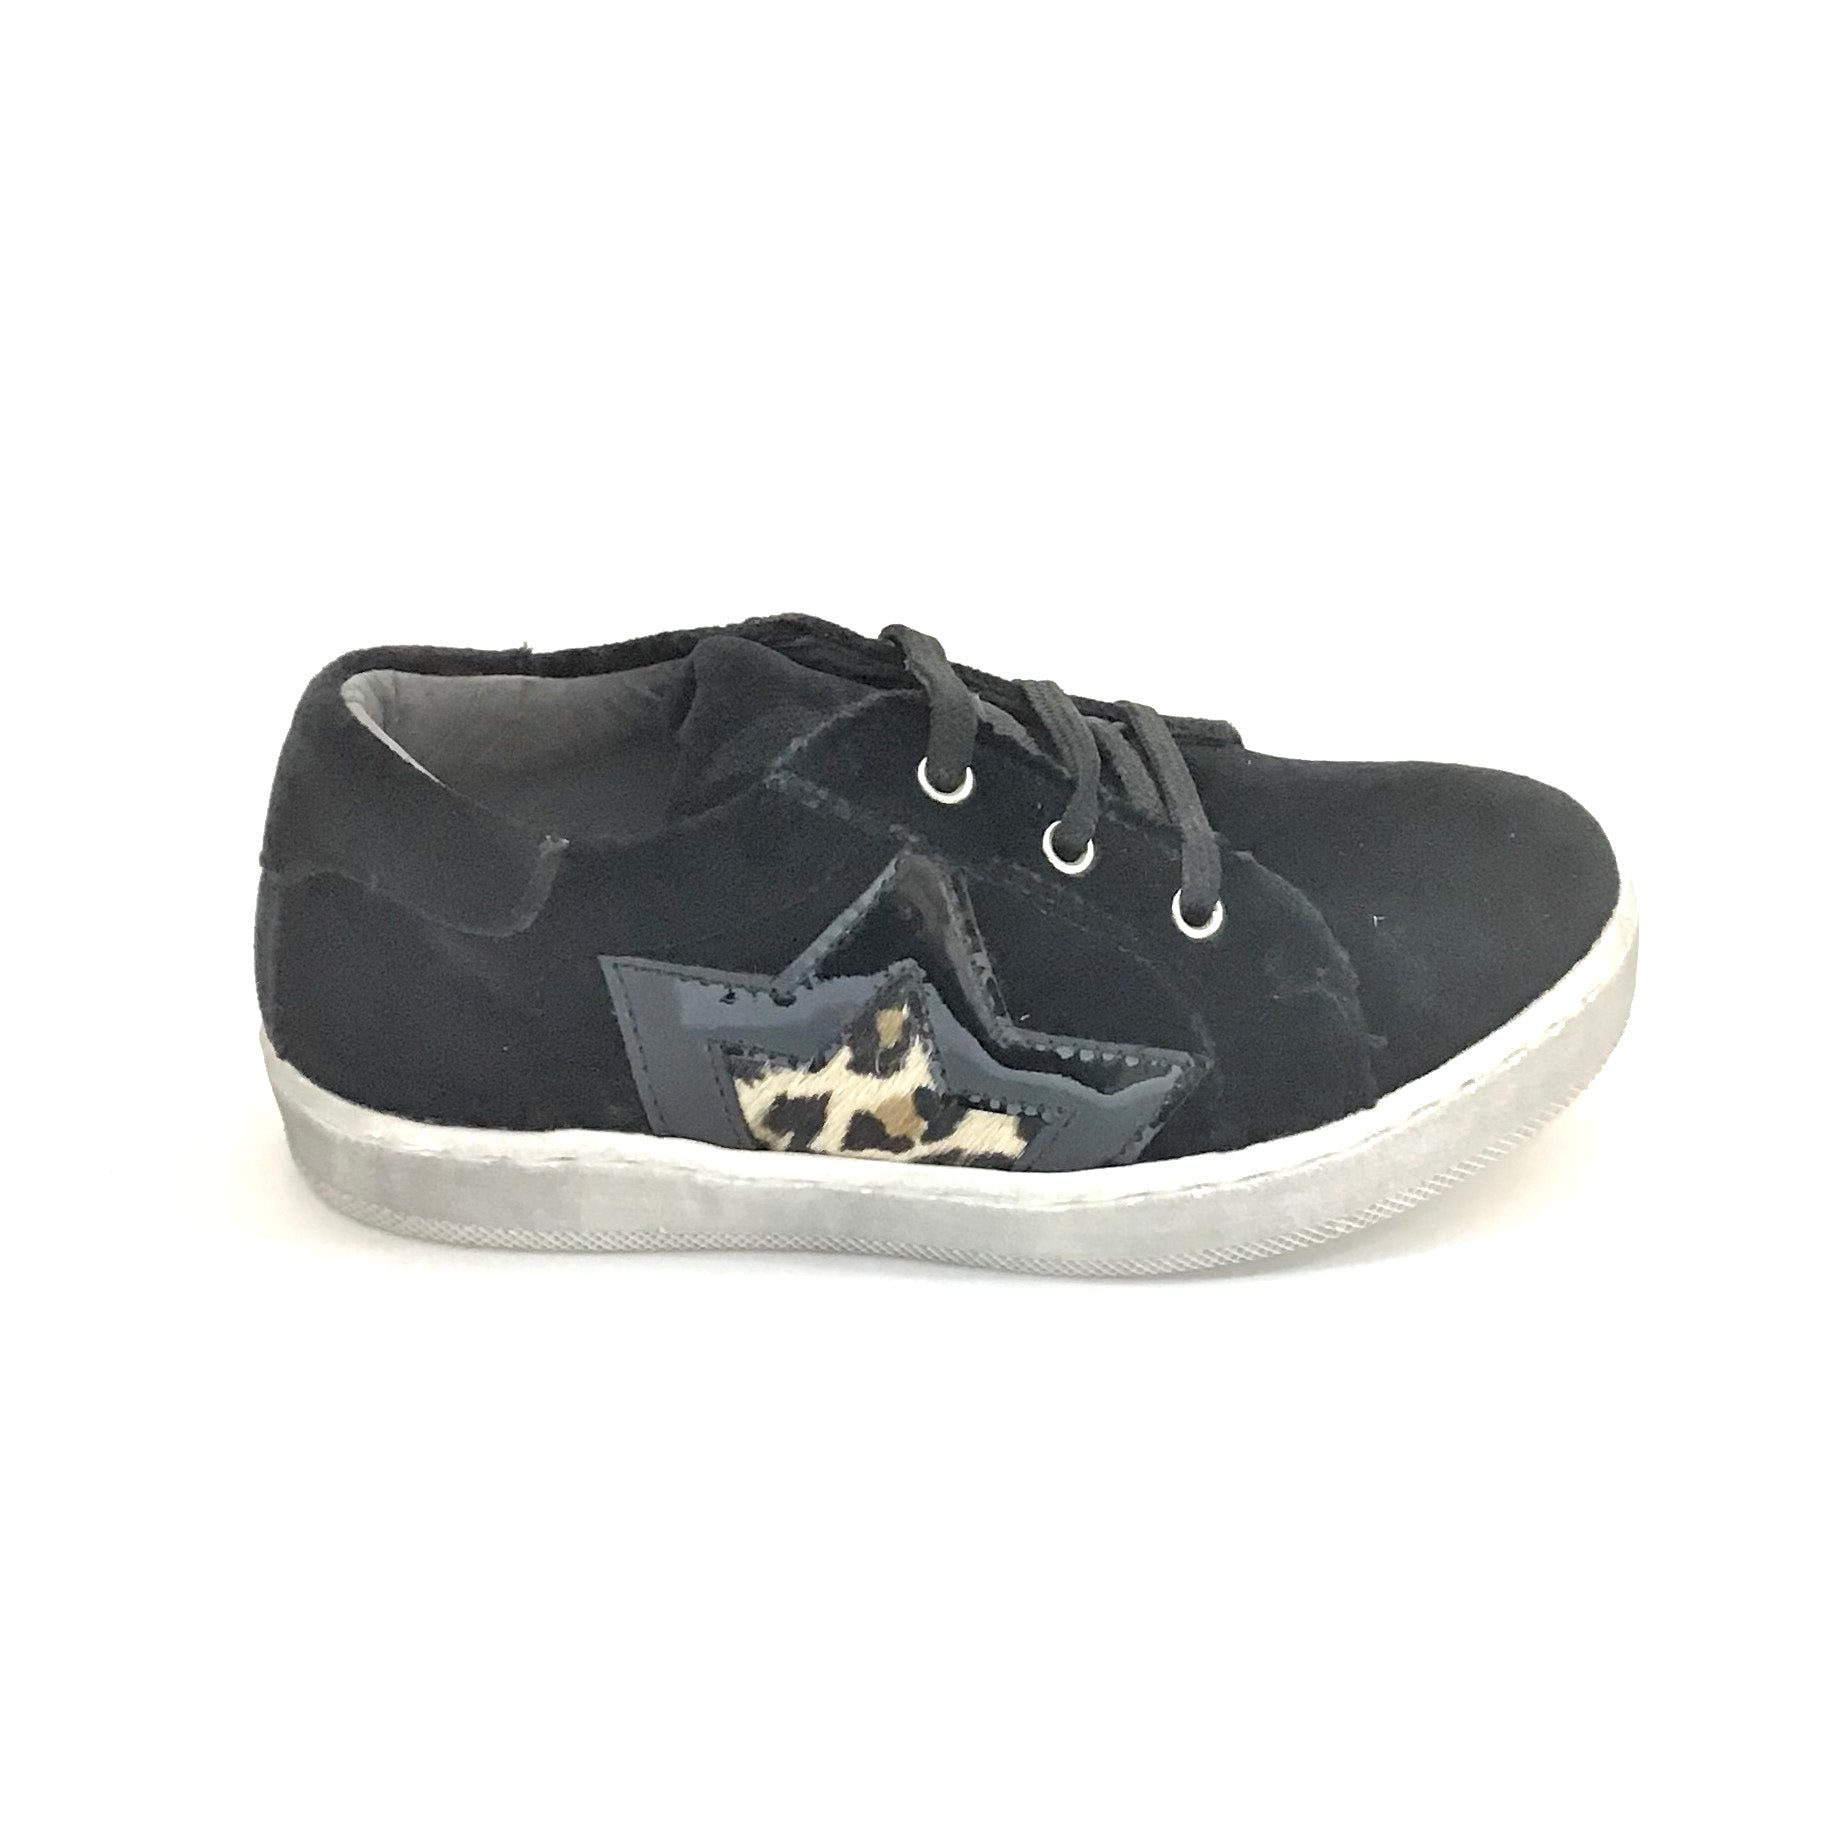 Blublonc Black Big Star Sneaker